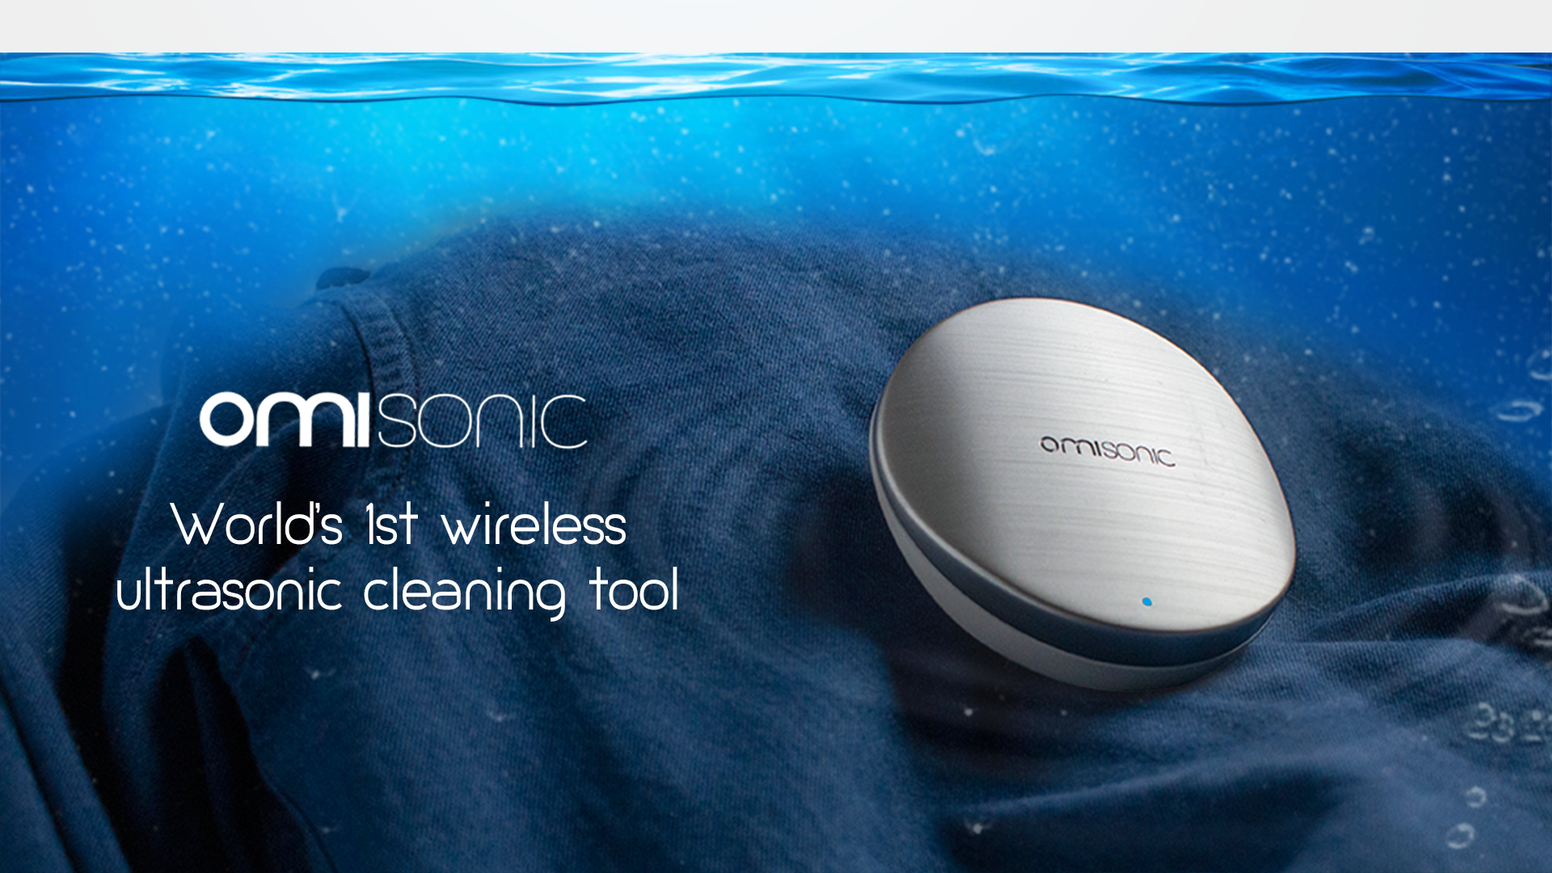 Clean your clothes, vegetables, jewelry at a microscopic level anywhere, anytime with the power of wireless ultrasonic technology!